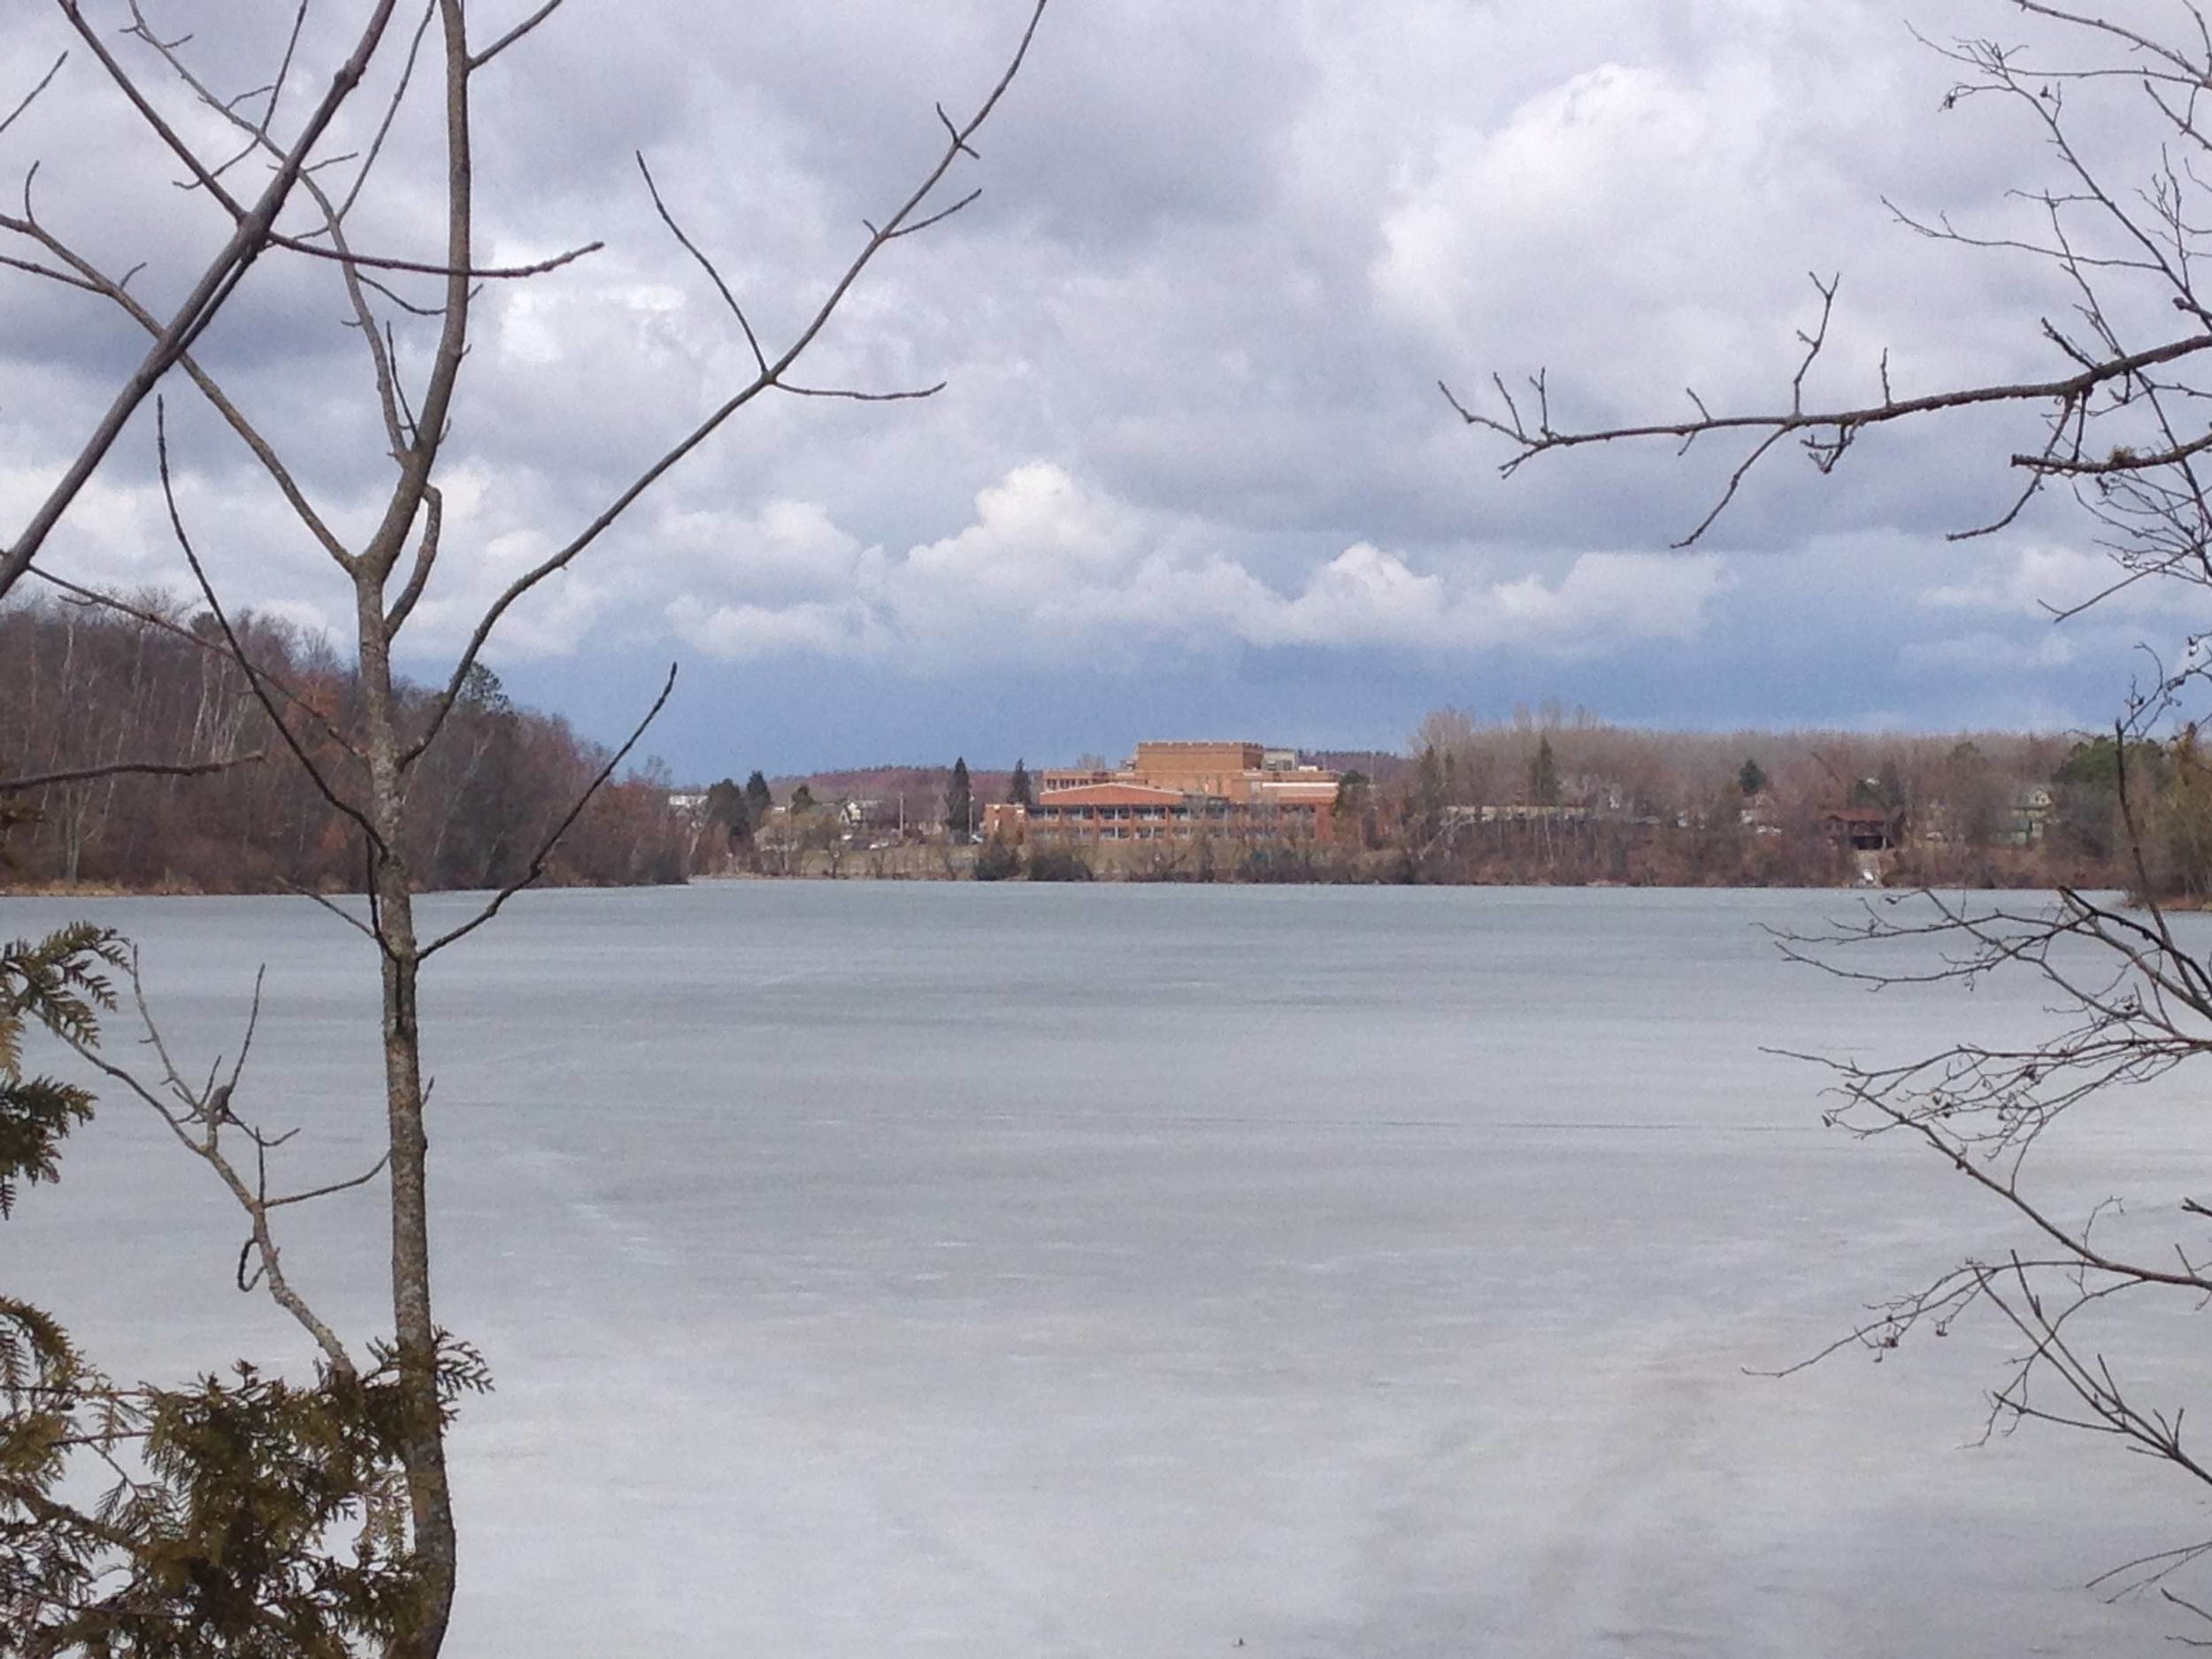 The town of Coleraine, as viewed from across Trout Lake